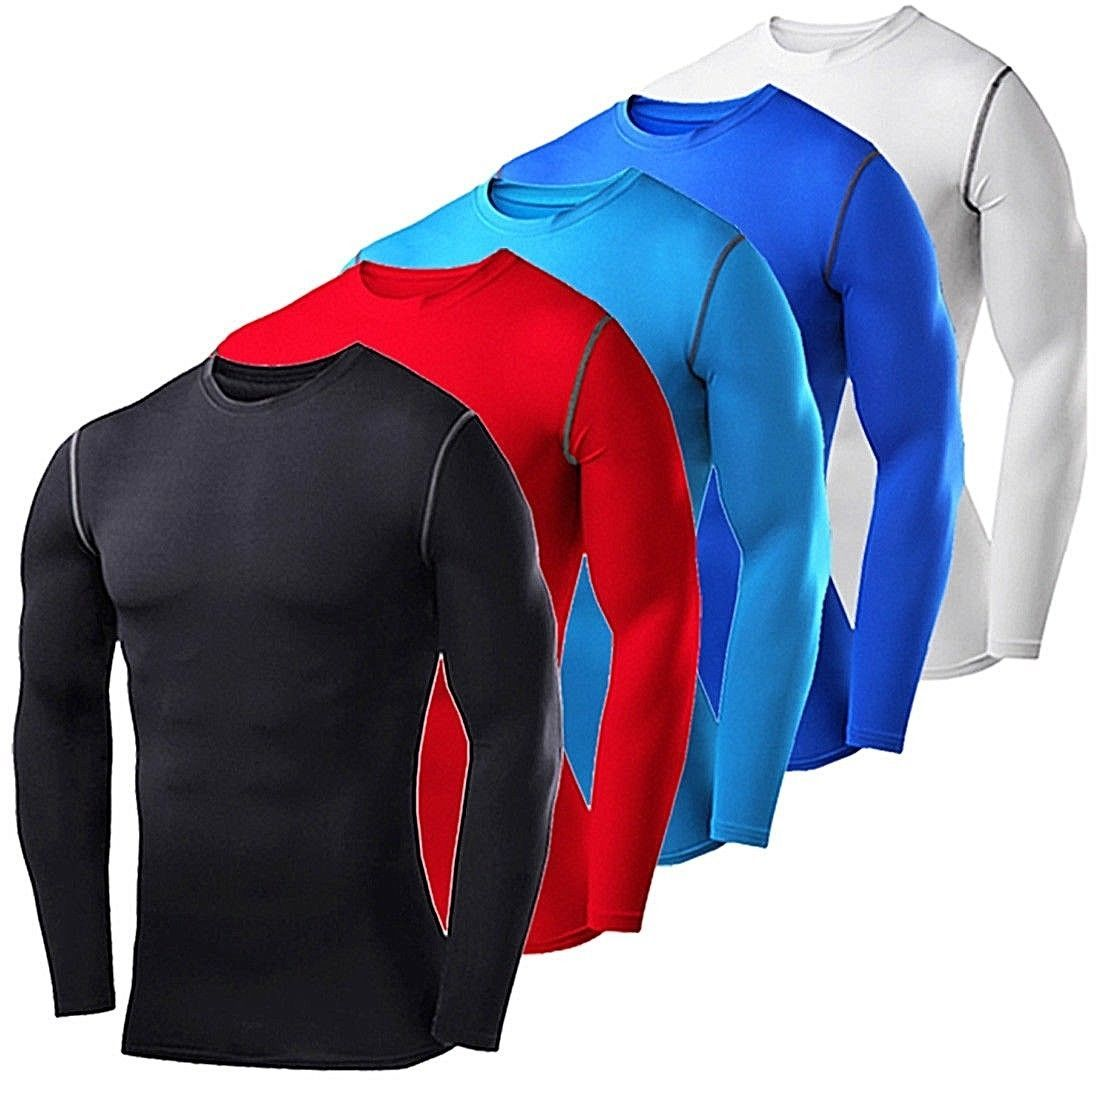 Men/'s Compression Tights Dri fit Tops Athletic Shirts Under Base Layers Wicking